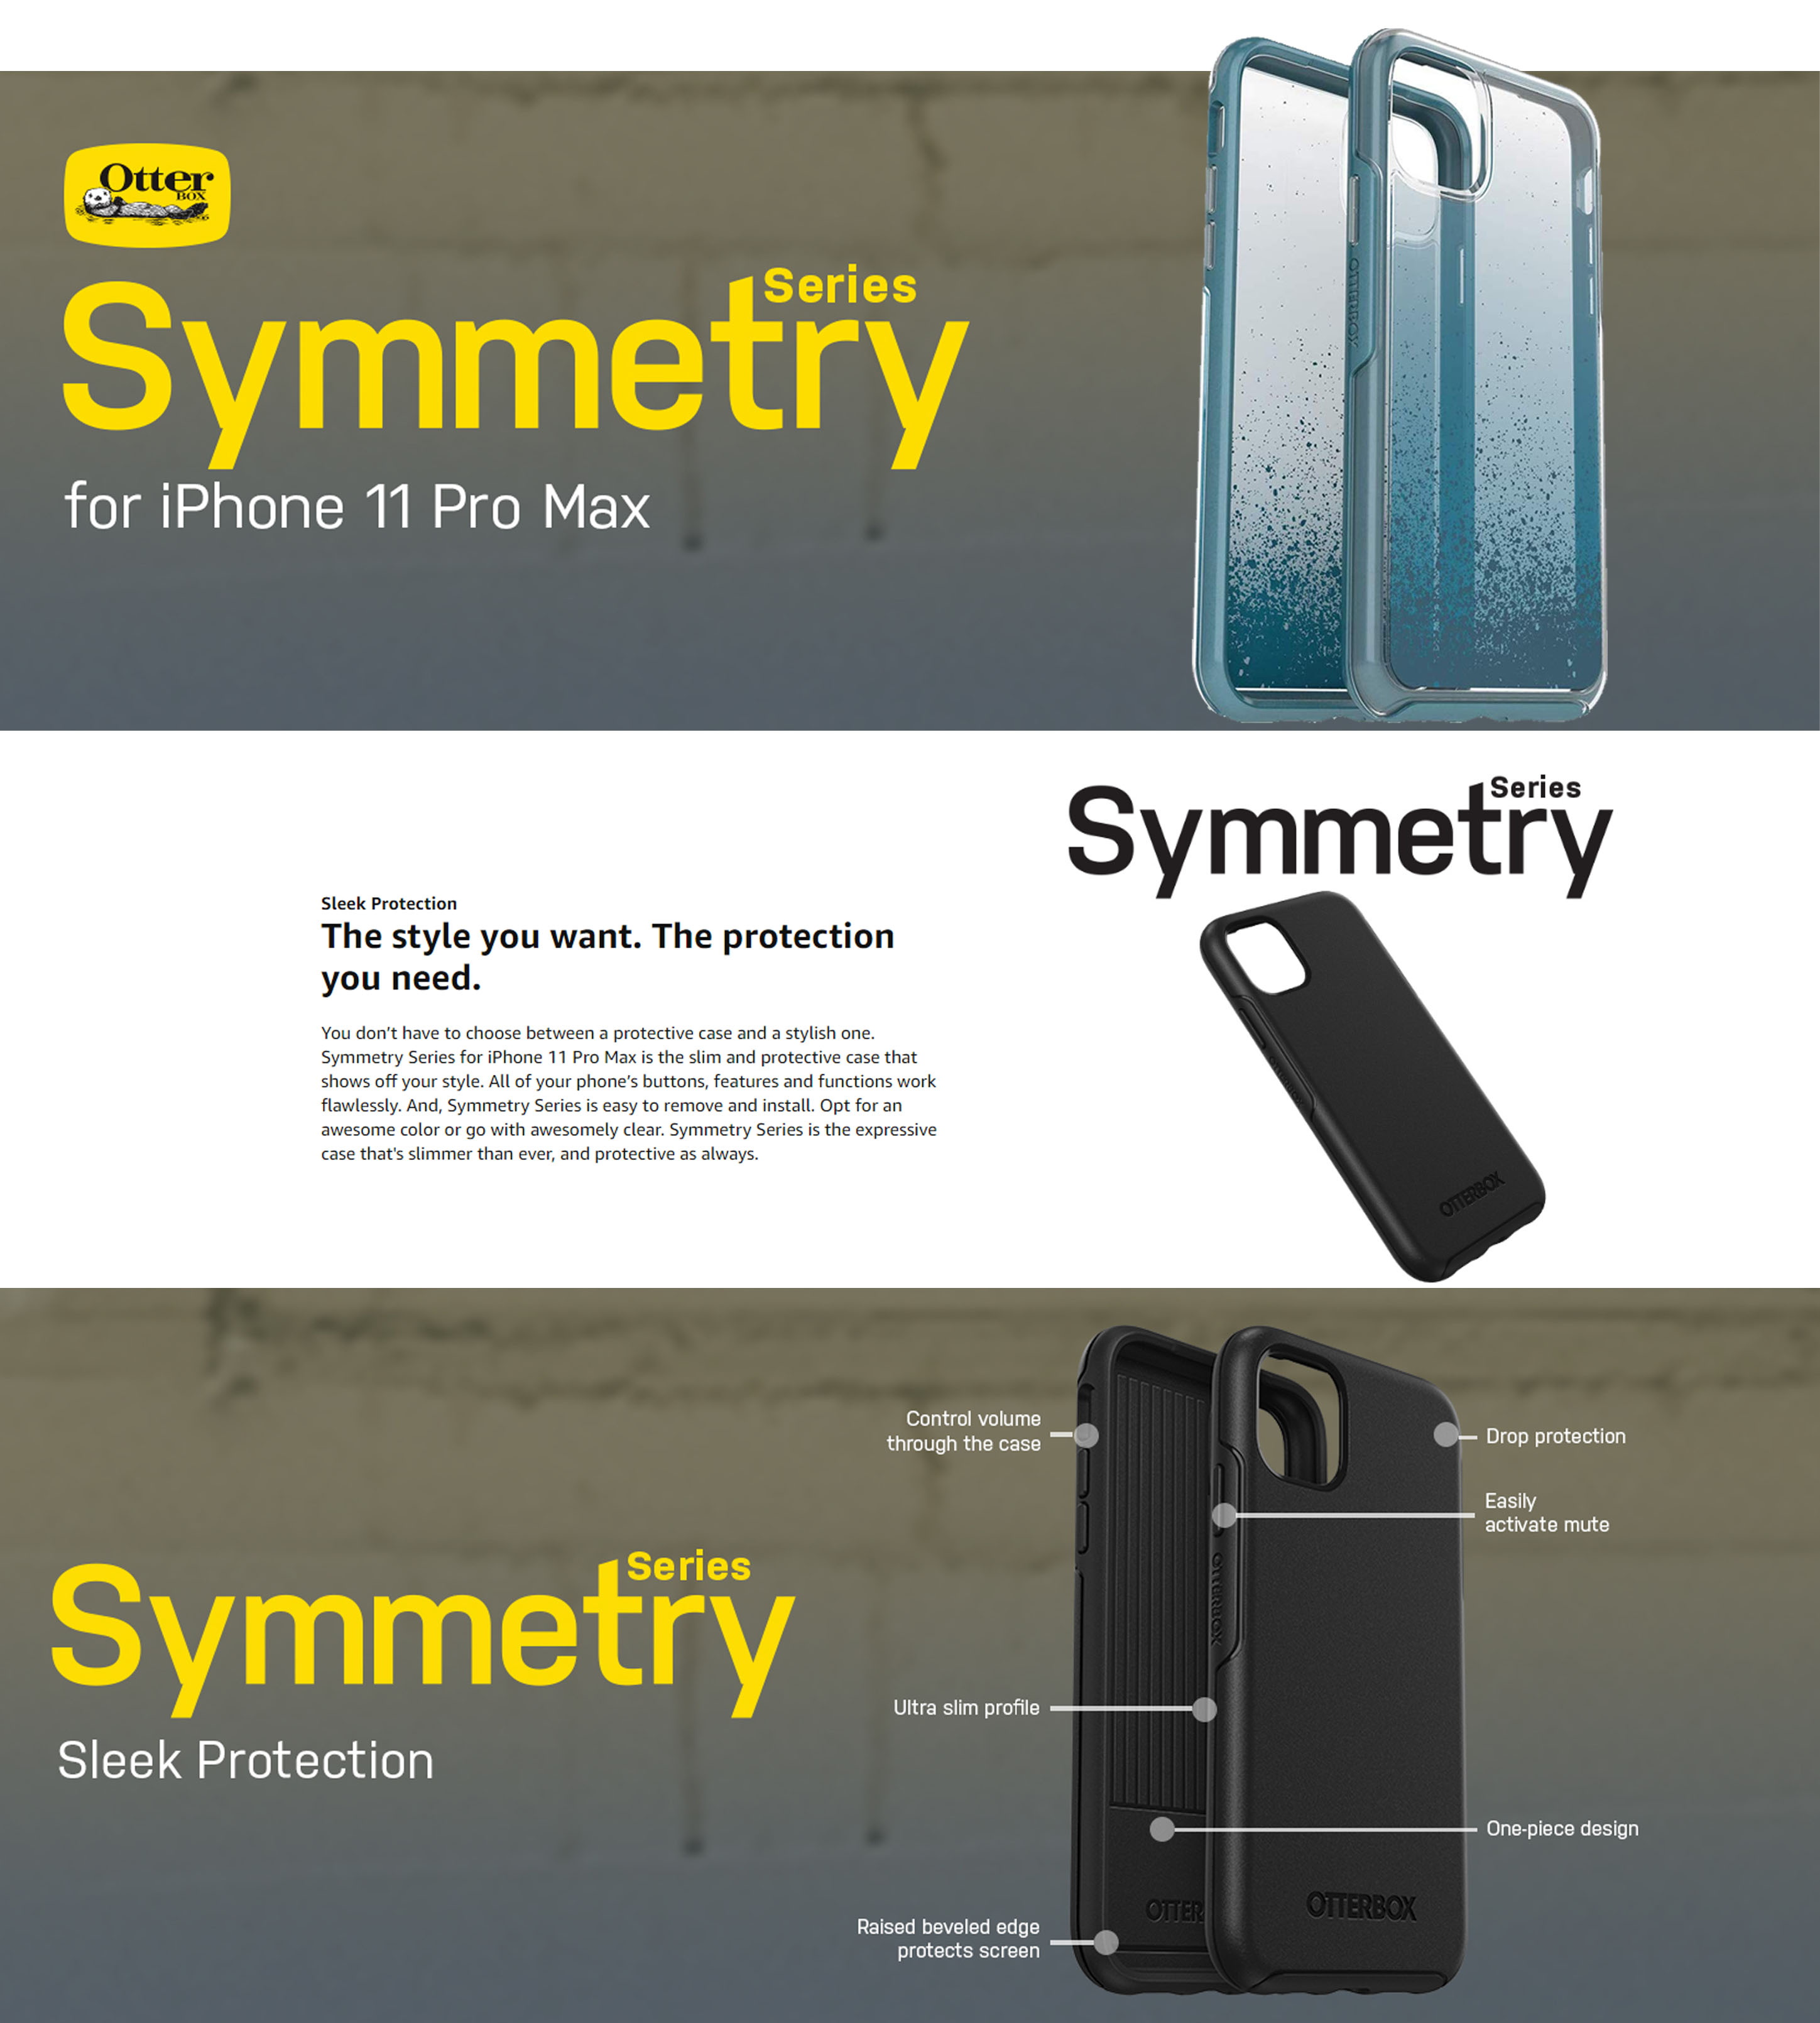 /Otterbox/660543512660/1-des-fx-otterbox-symmetry-clear-iphone-11-pro-max-stardust-color-660543512660-malaysia-authorised-retailer